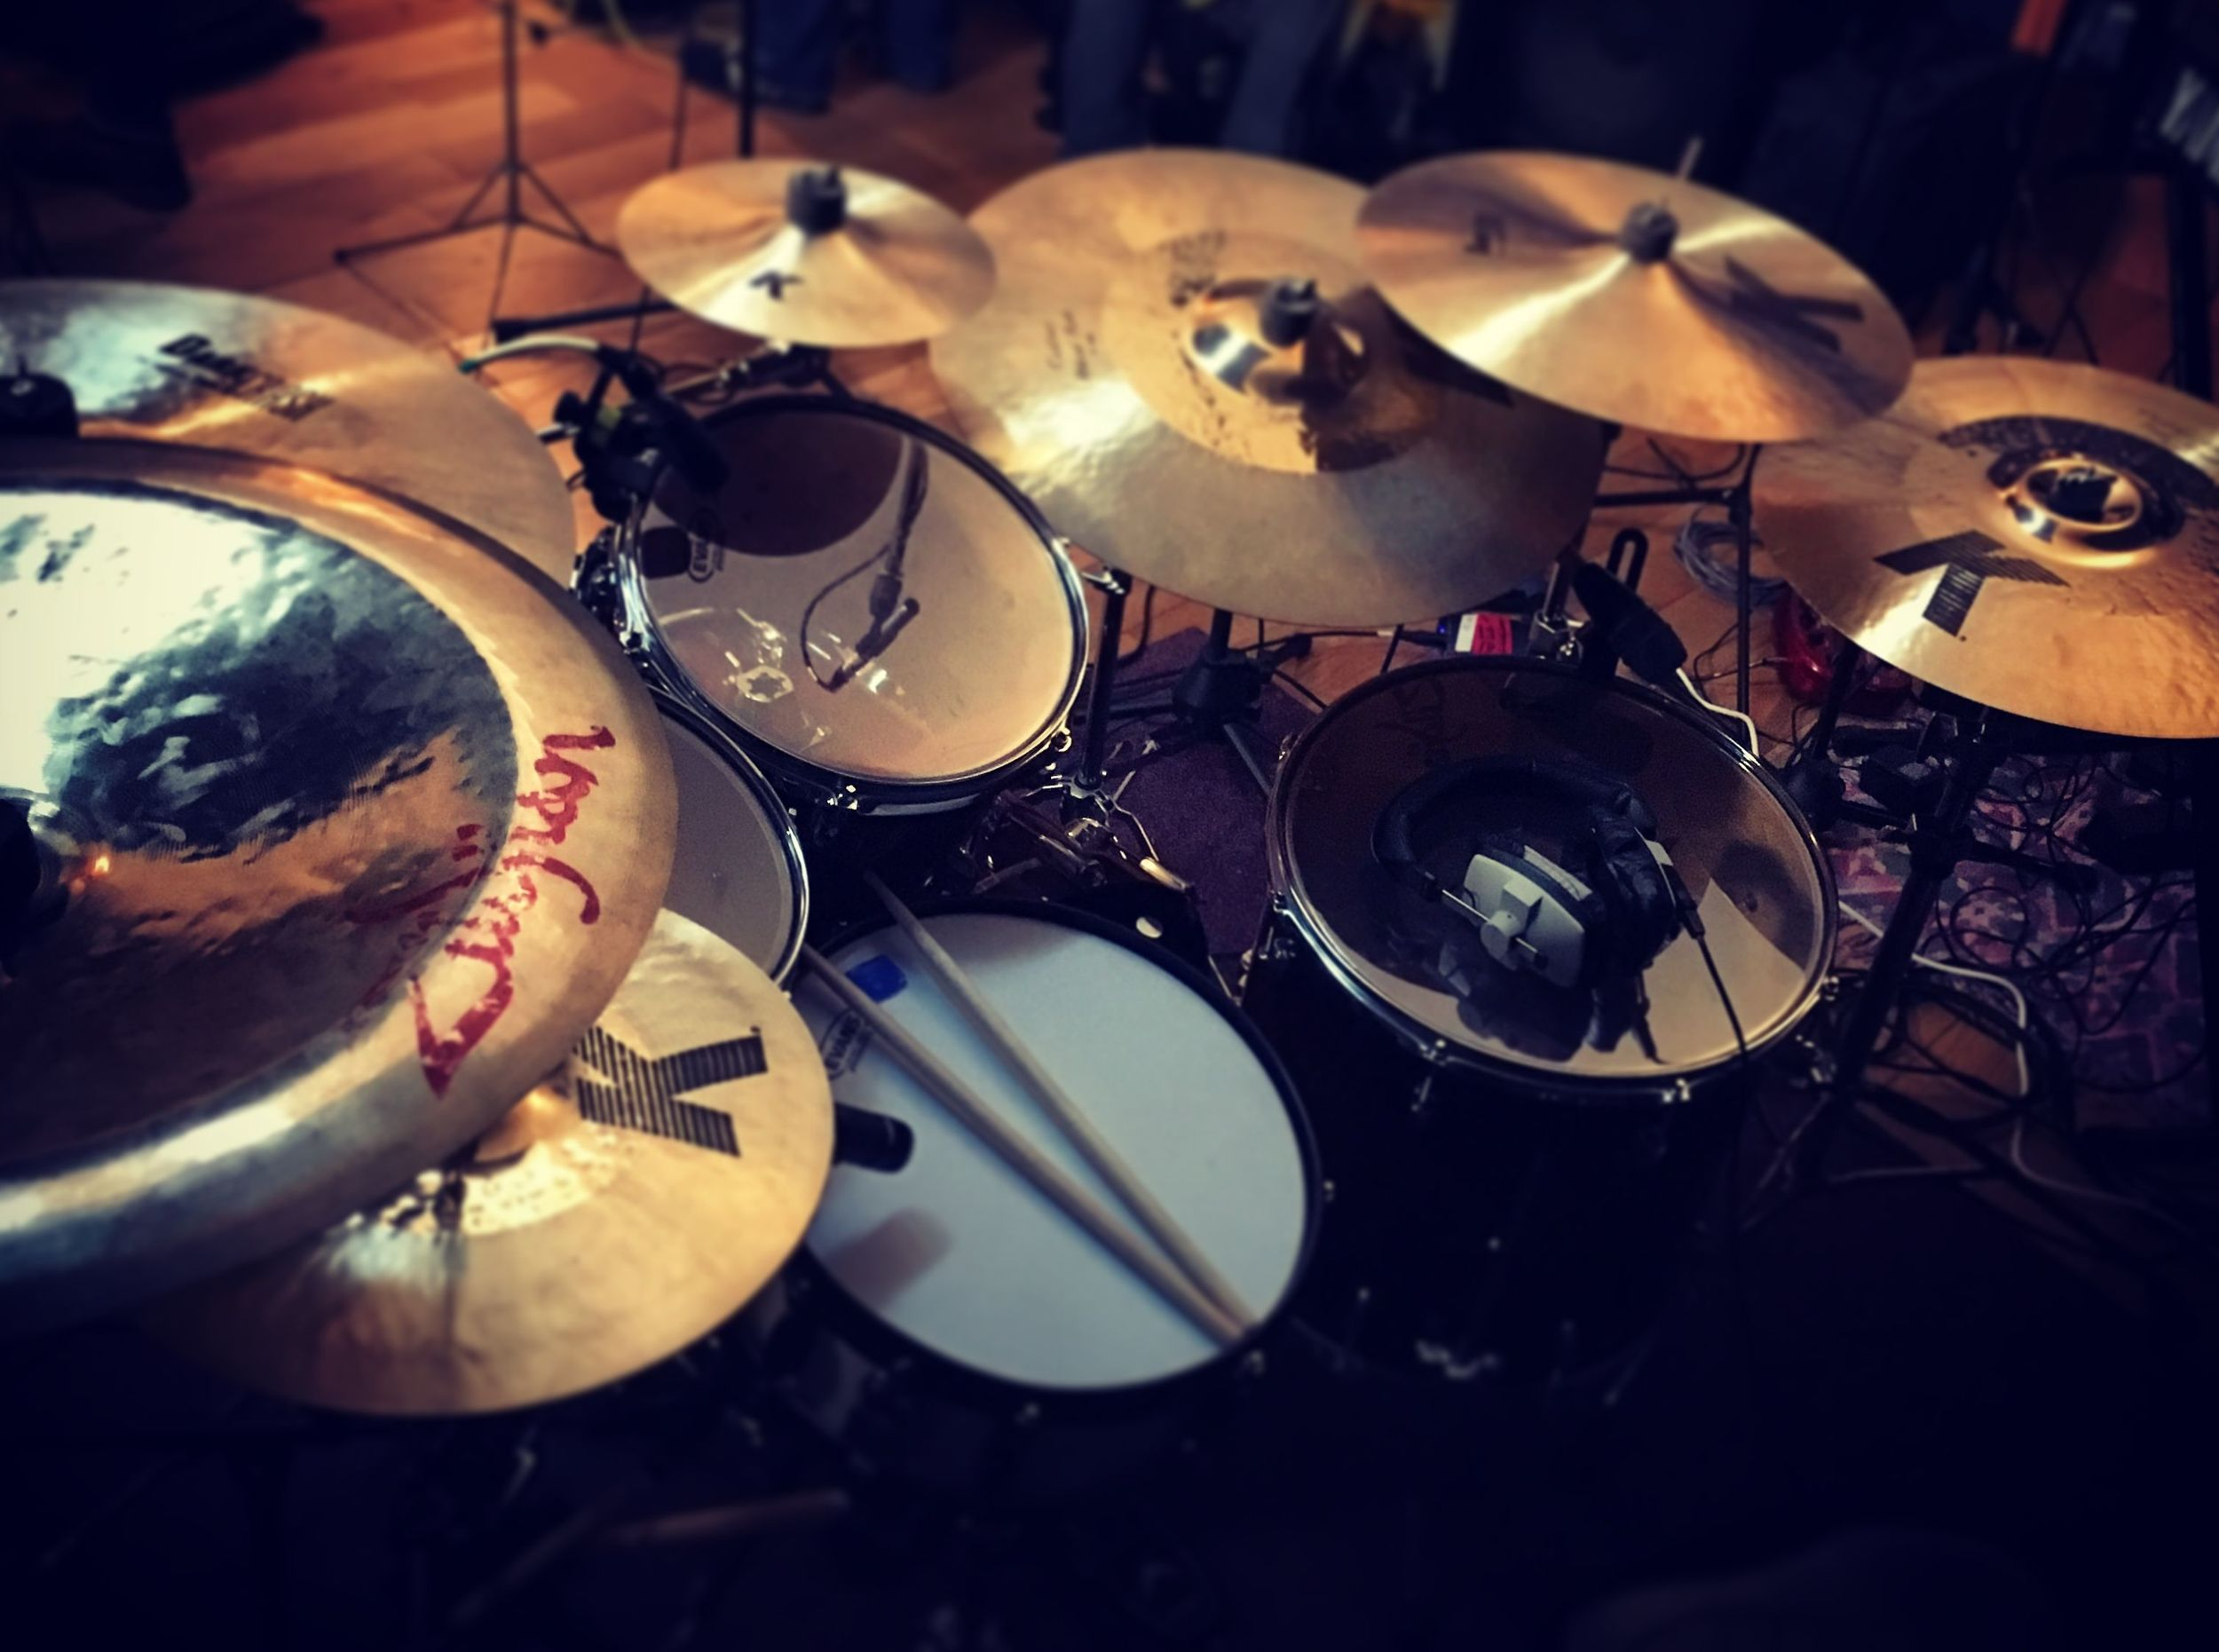 My regular set-up for most gigs